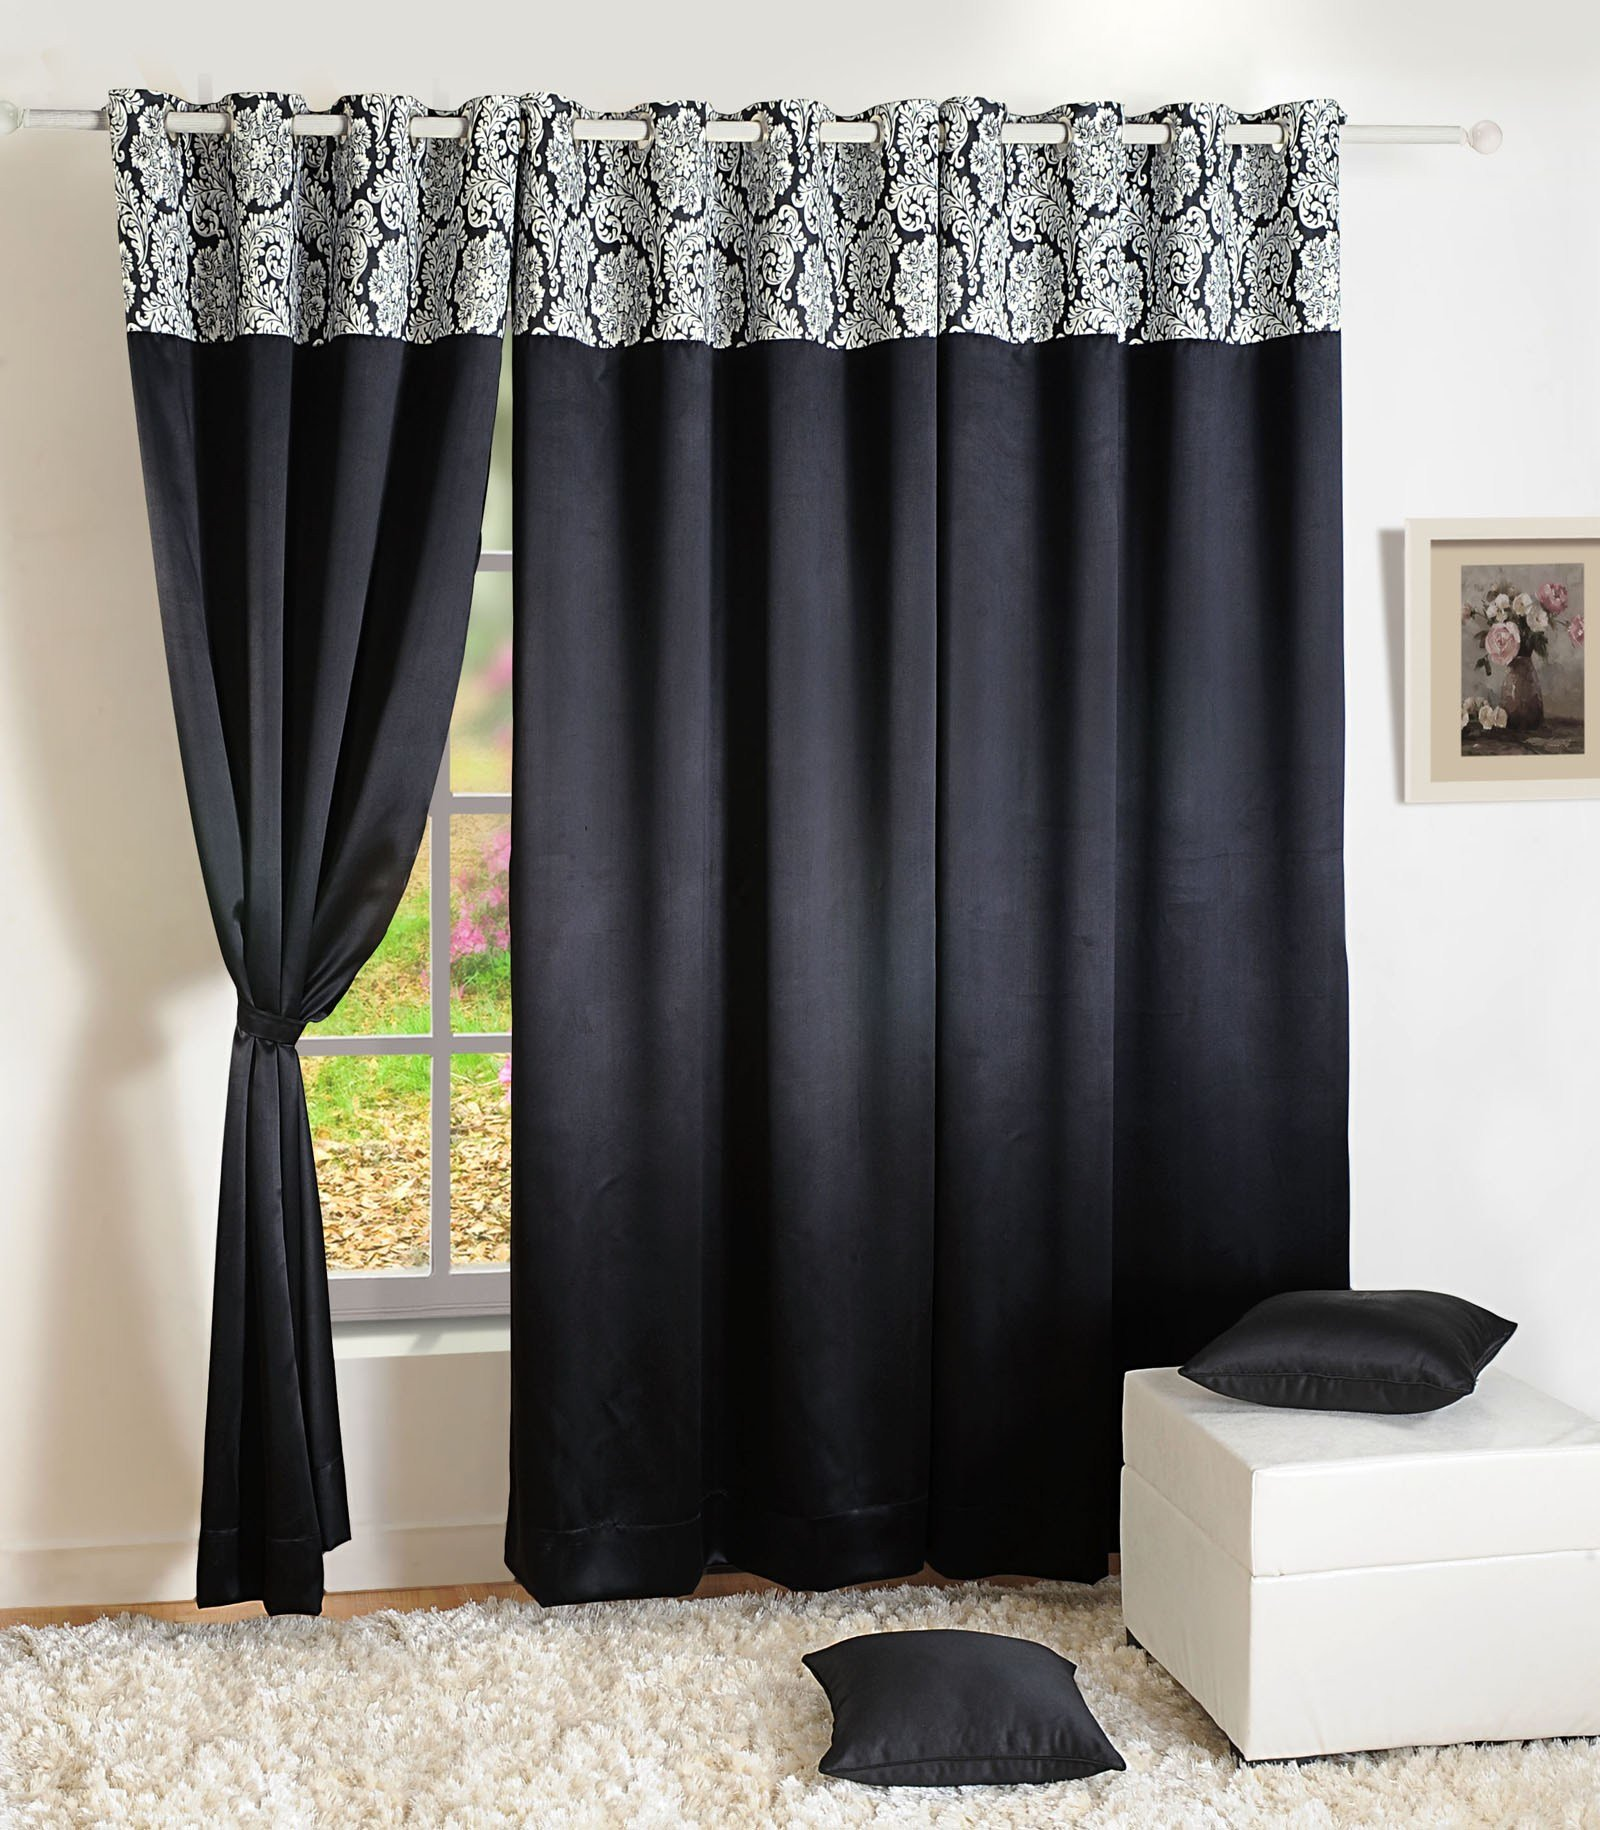 Best Home Decor Faux Silk Window Drape Panel Bedroom Blackout Eyelet Door Curtain 217 With Pictures